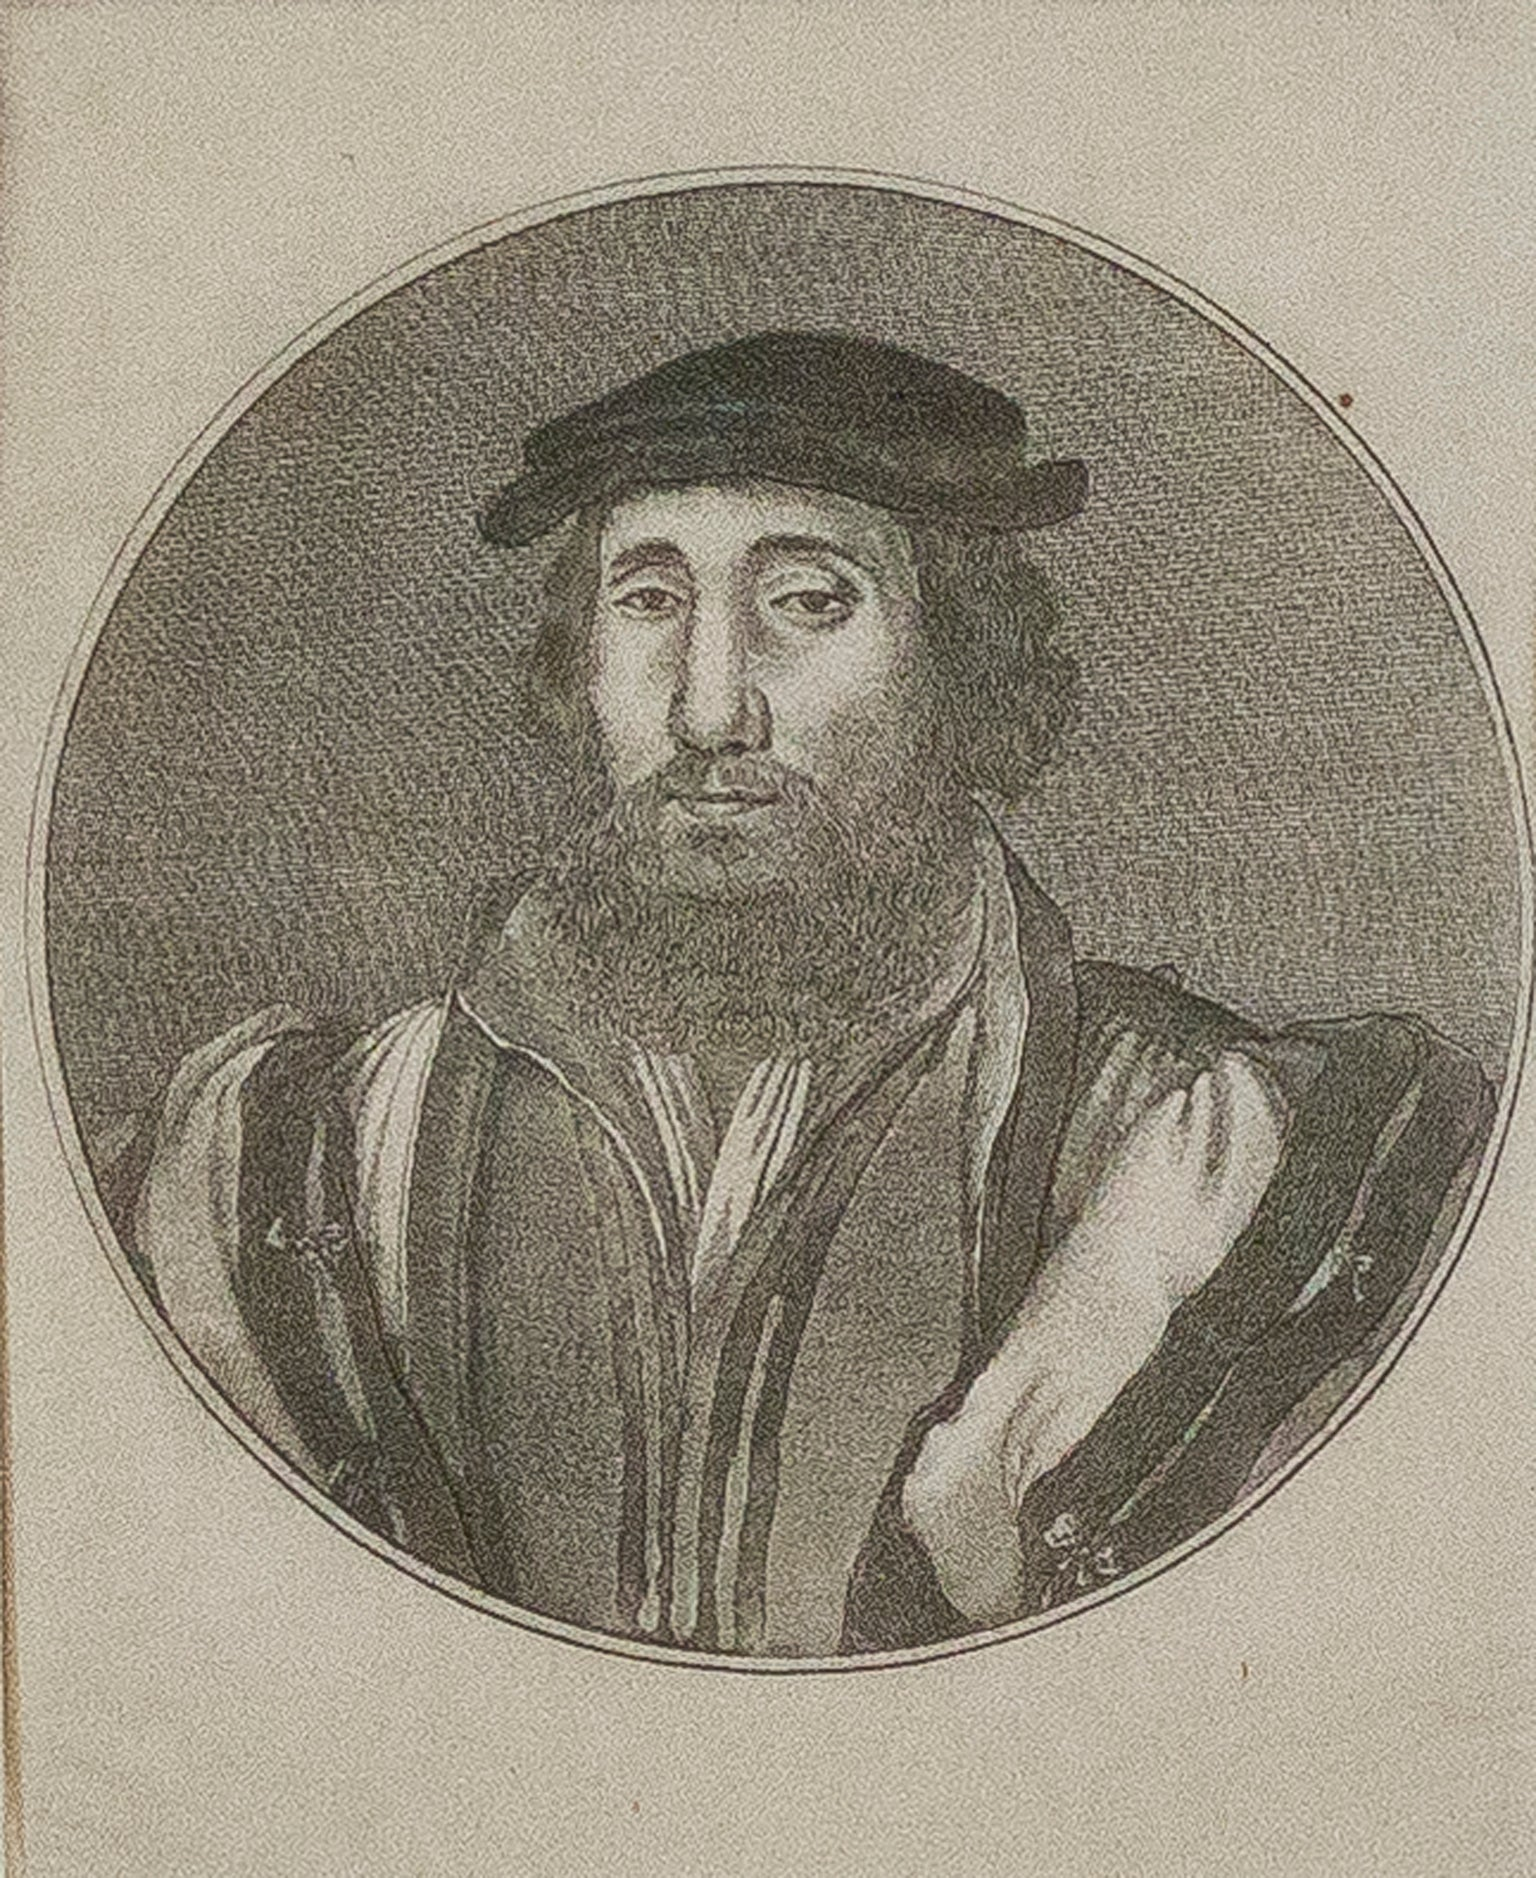 Portrait of a Man an Engraving by Wenceslaus Hollar